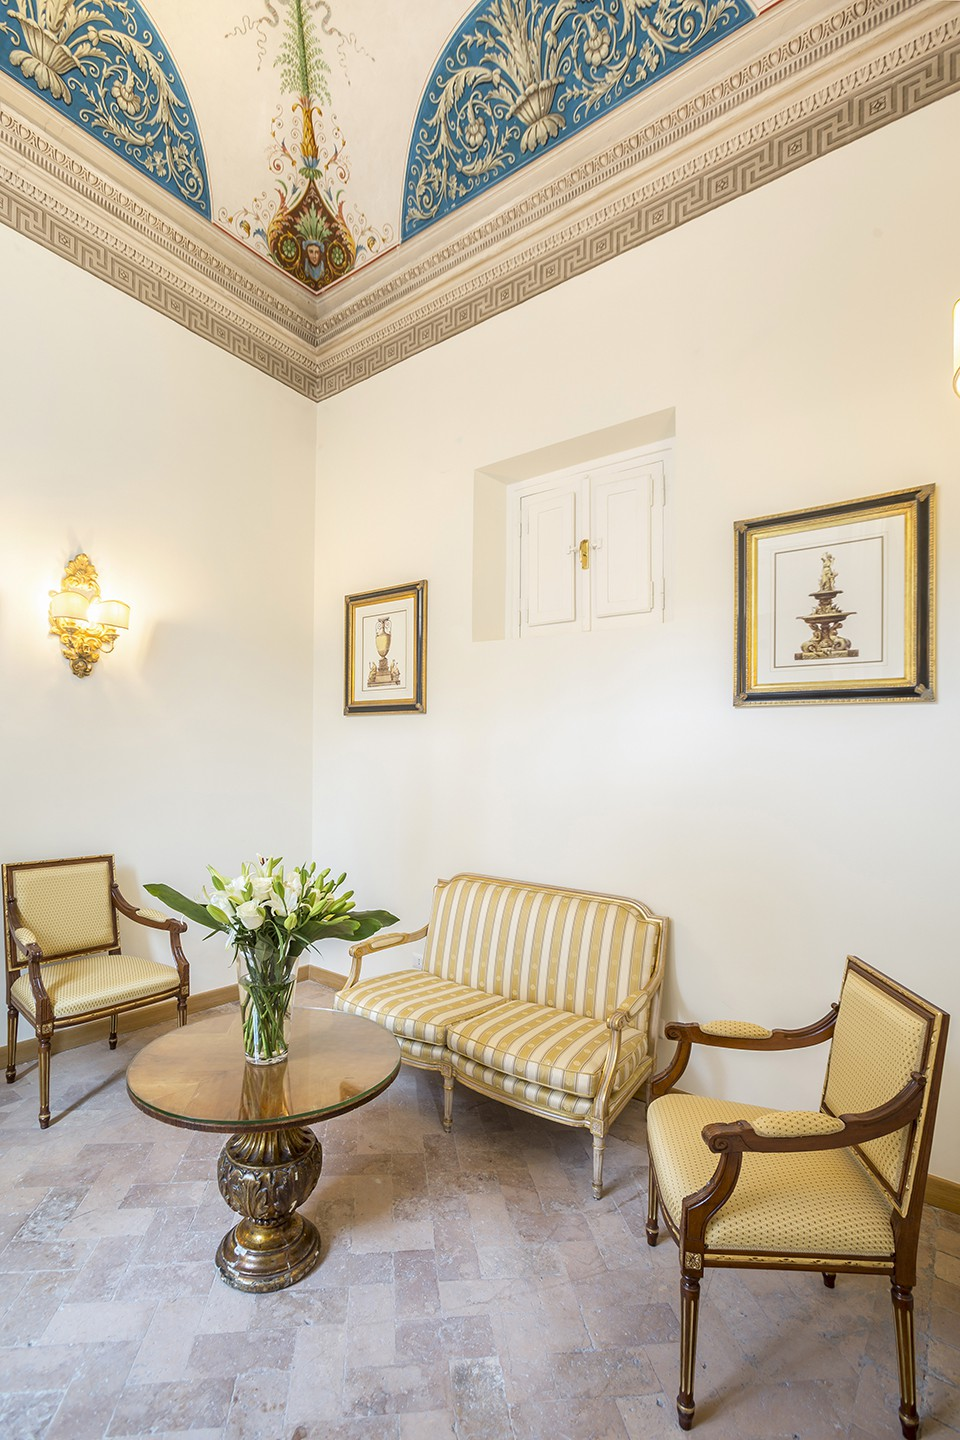 Hotel-Eitch-Borromini-Rome-suite-94239444